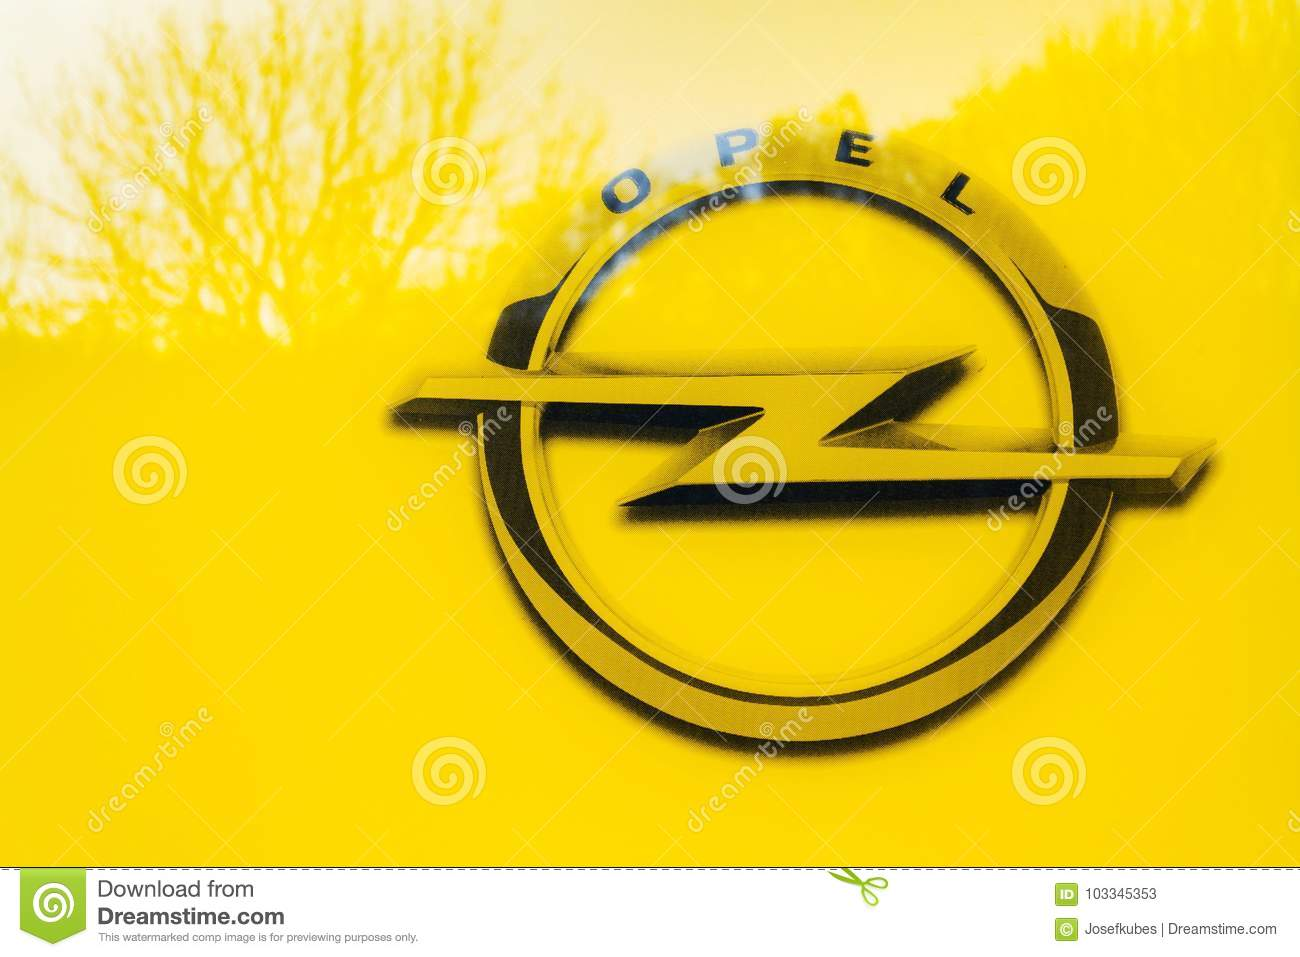 hight resolution of opel company logo on car in front of dealership building